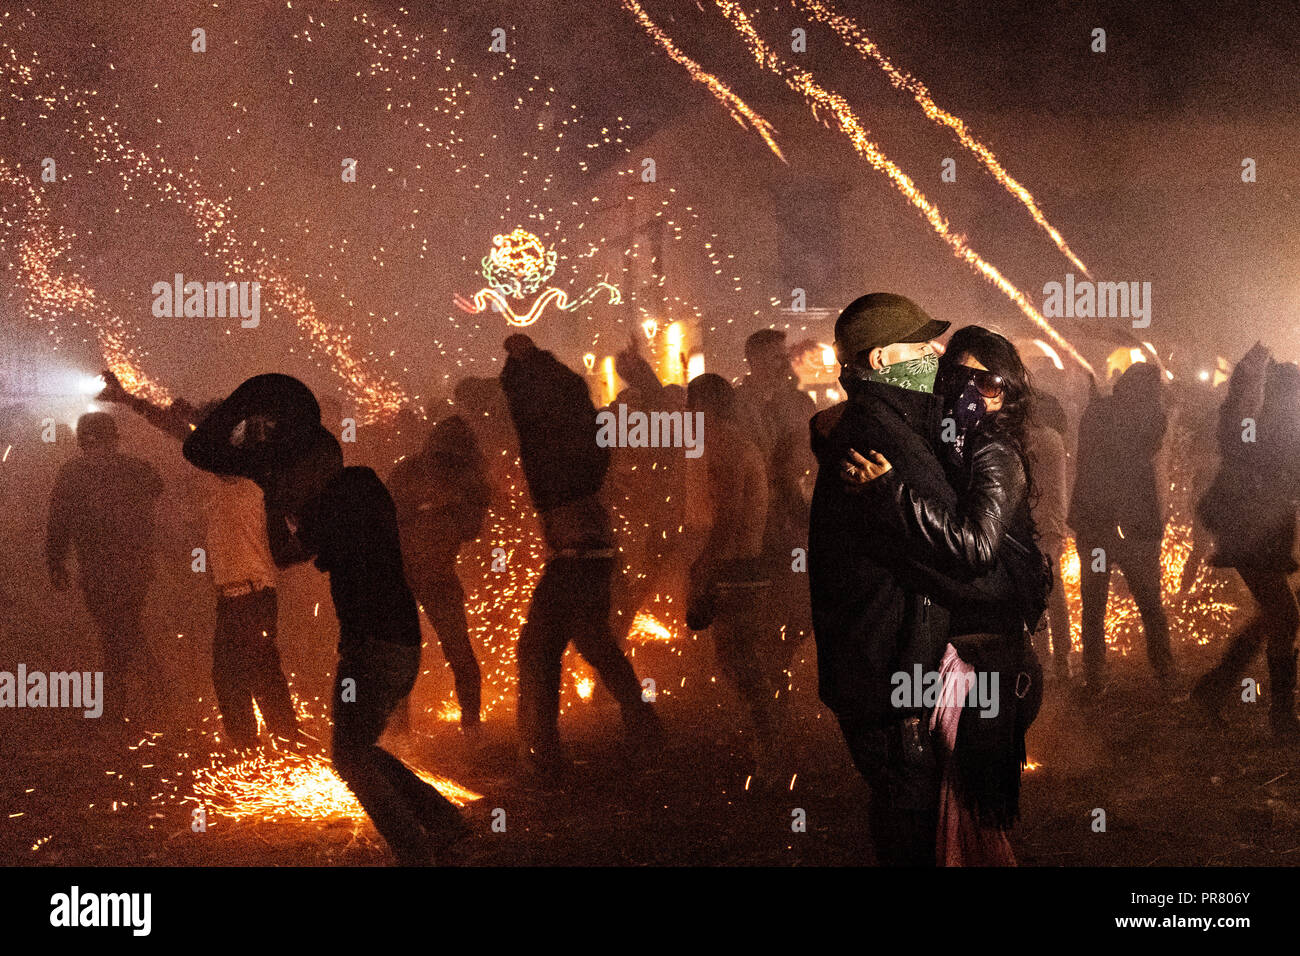 San Miguel de Allende, Mexico. 29th Sept 2018. A couple slow dances as dozens of sky rockets explode around them during the Alborada festival September 29, 2018 in San Miguel de Allende, Mexico. The unusual festival celebrates the cities patron saint with a two hour-long firework battle at 4am representing the struggle between Saint Michael and Lucifer. Credit: Planetpix/Alamy Live News - Stock Image